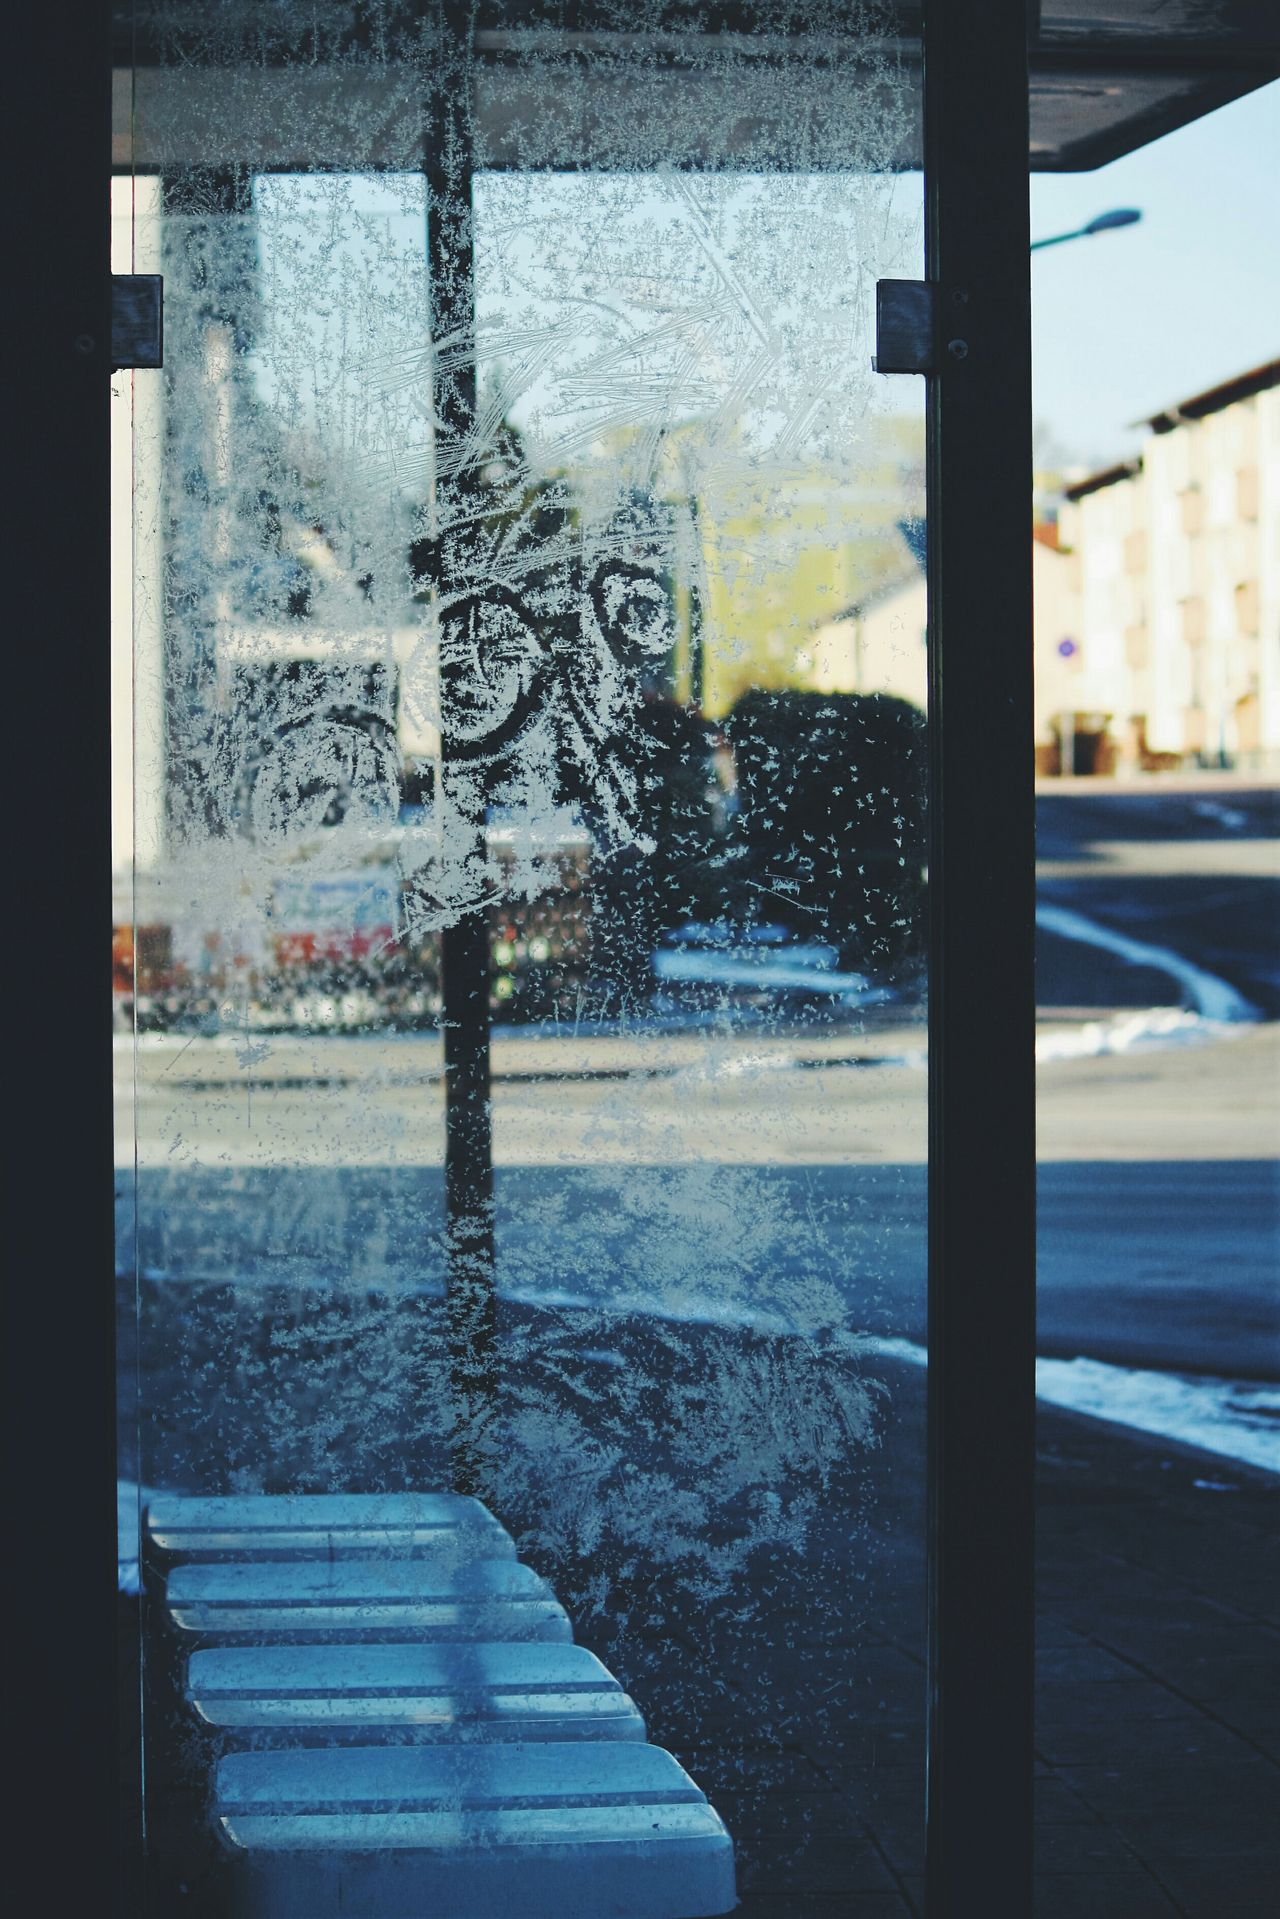 Glass - Material Window Transparent Indoors  Cleaning One Person Looking Through Window Sky Day Close-up Water Frosted Glass People City Life Snow Winter Cold Temperature Snowcristals  Weather The City Light